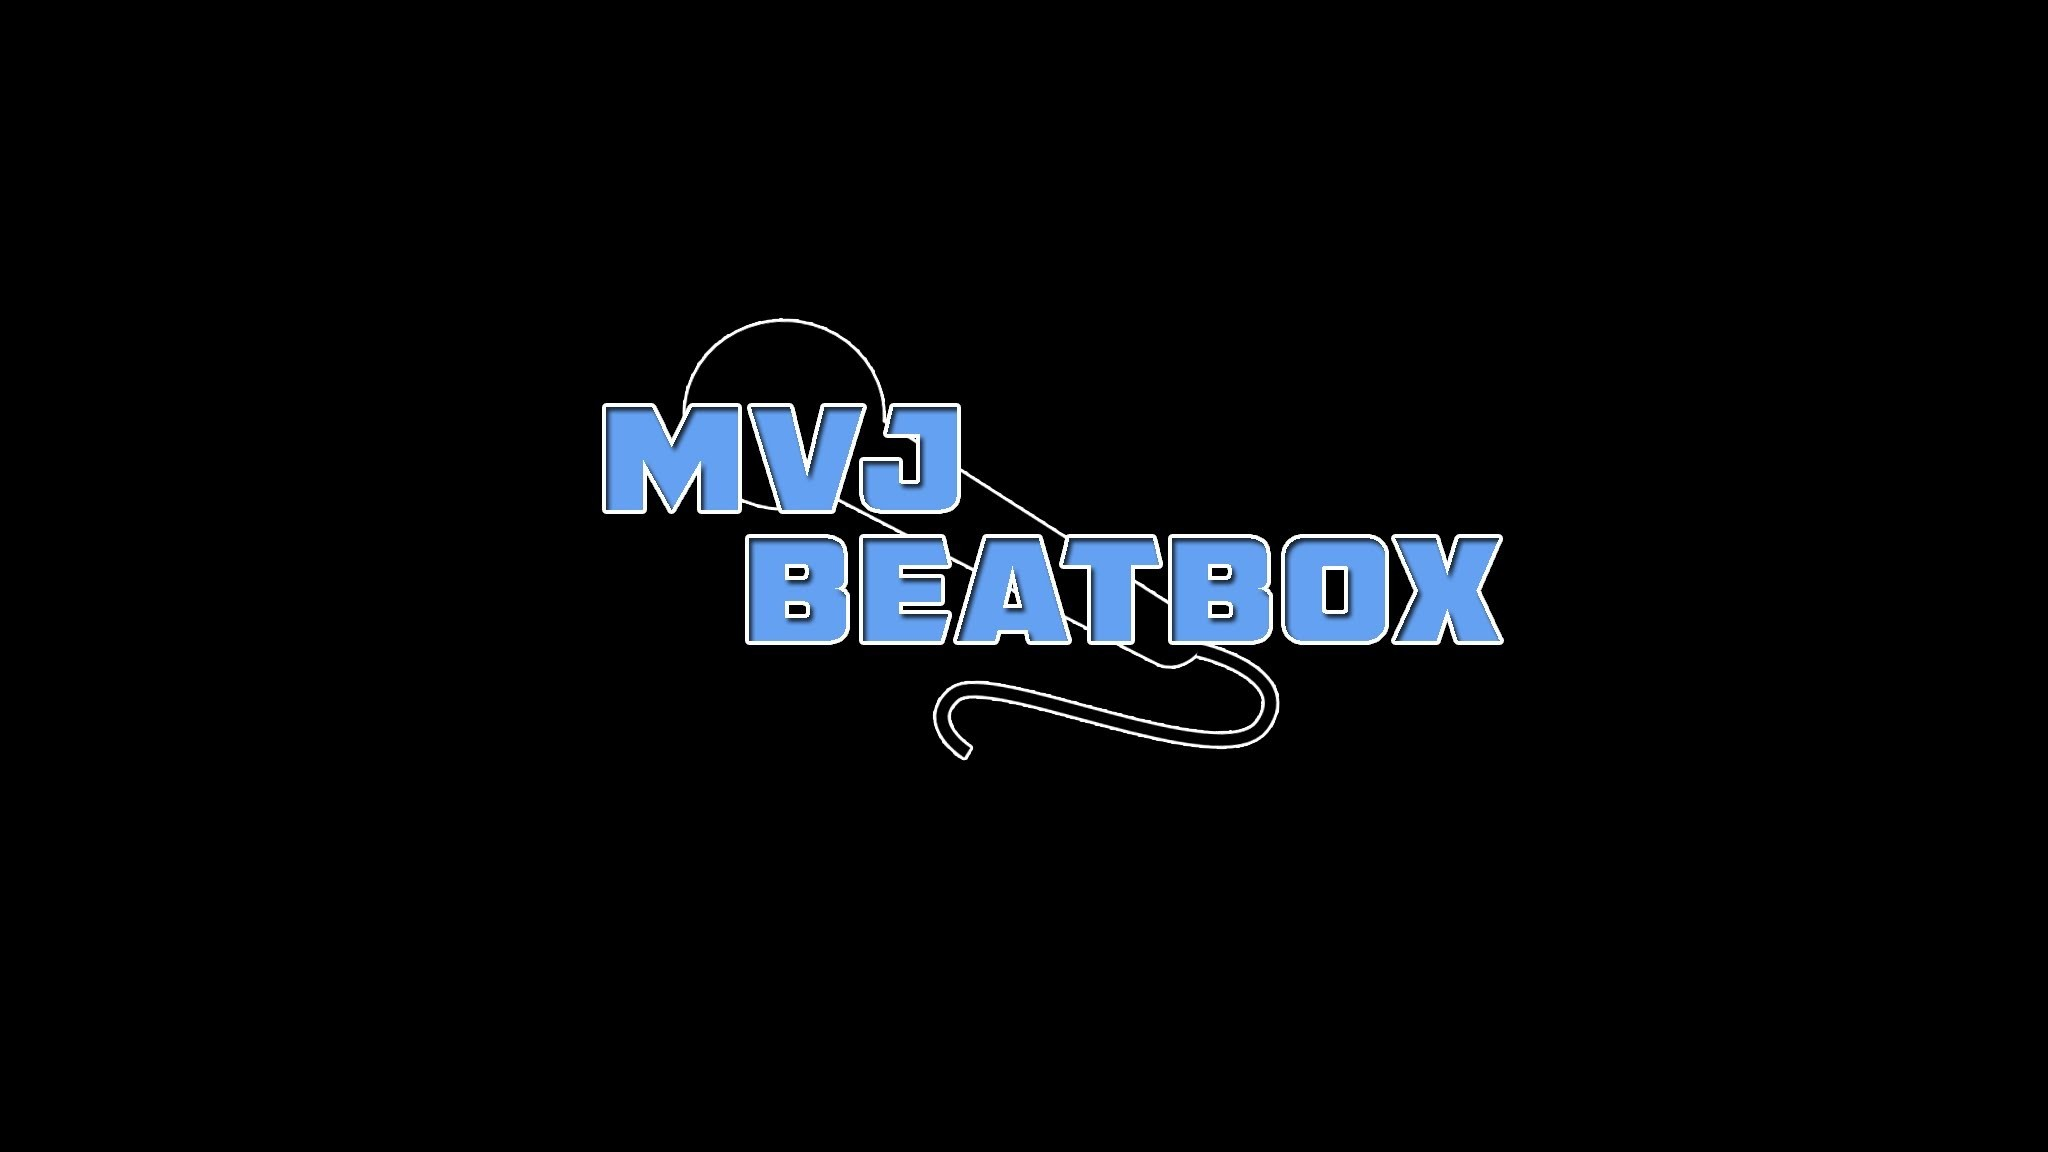 Beatbox Wallpapers 66 Pictures